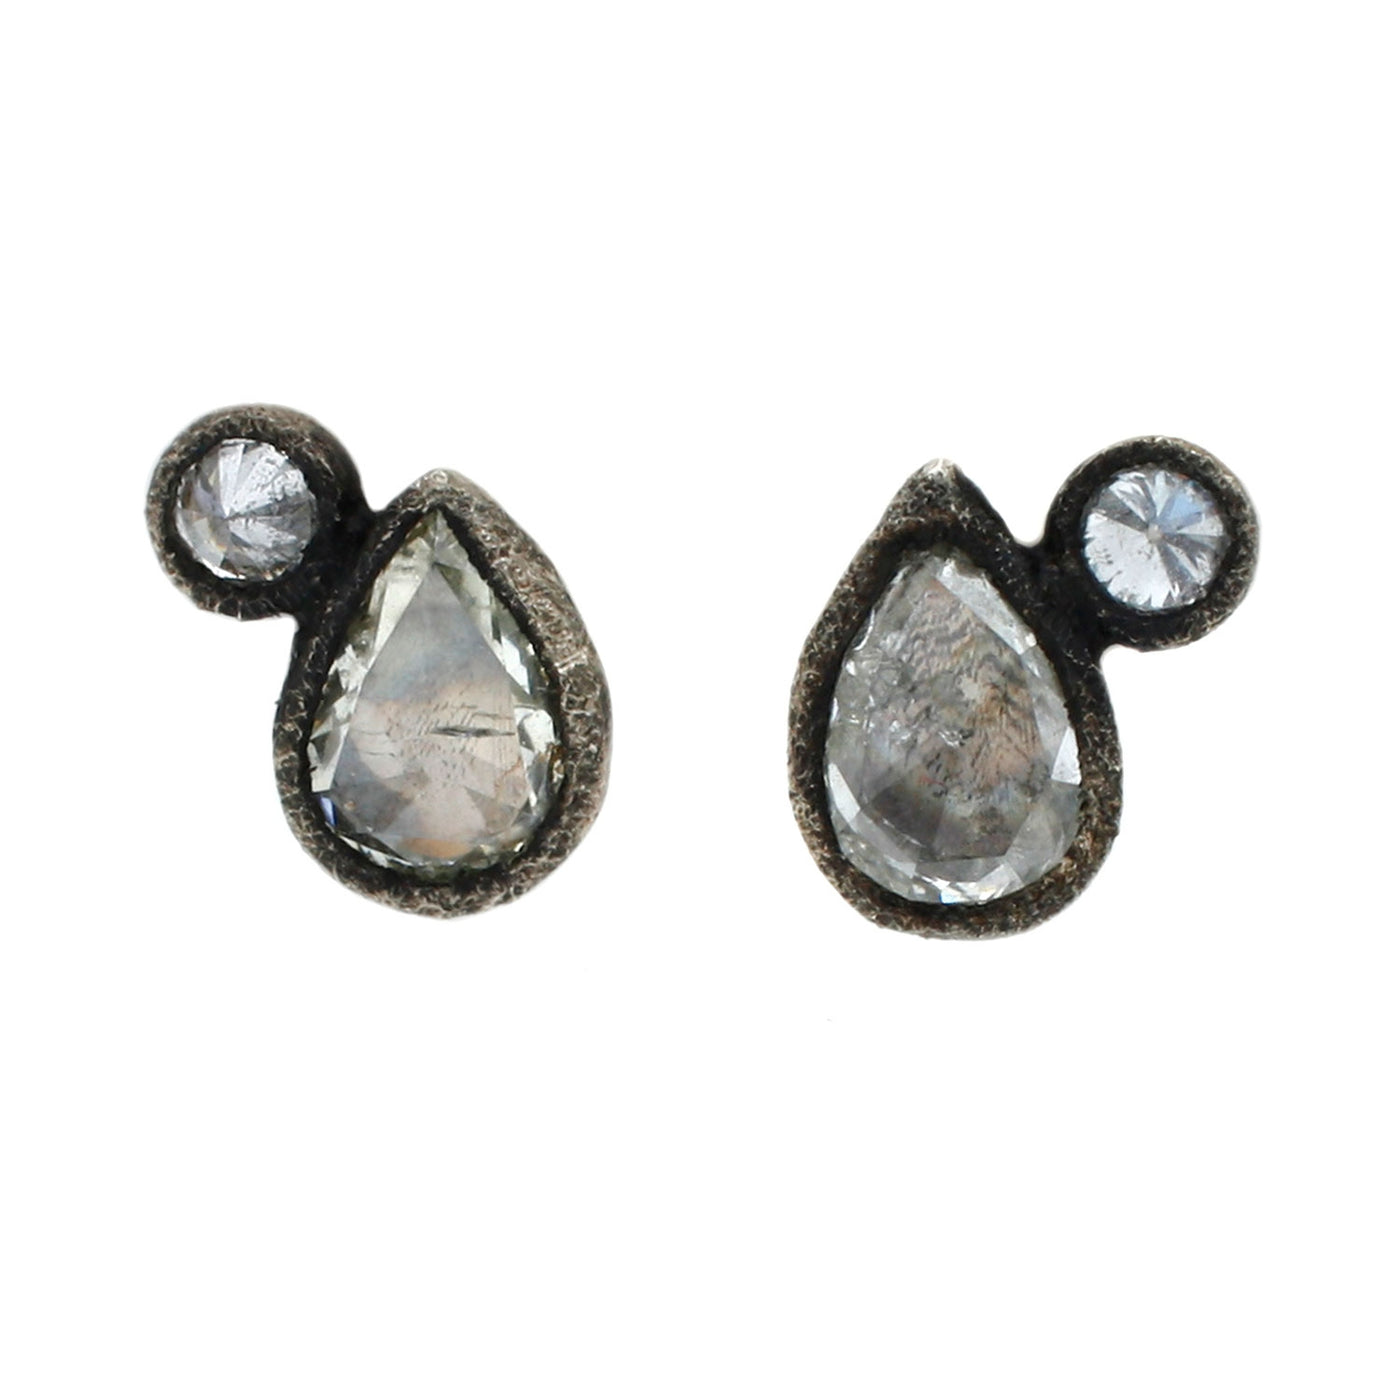 TAP by Todd Pownell Companion Diamond Stud Earrings